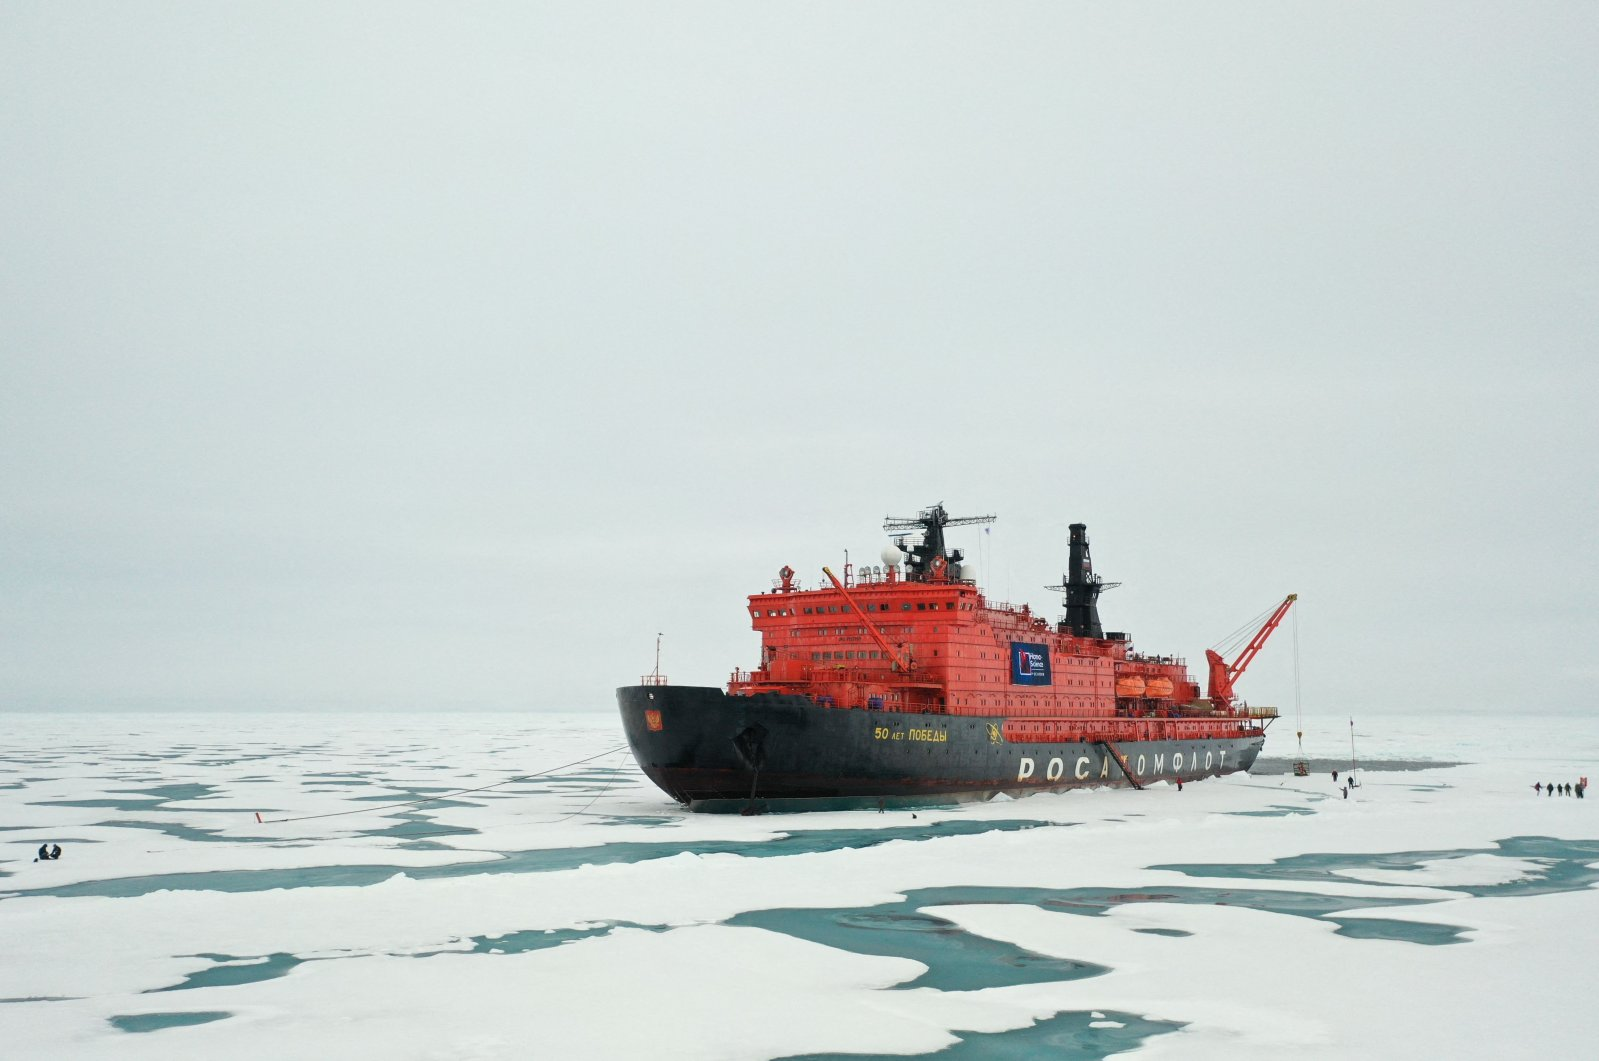 """The Russian """"50 Years of Victory"""" nuclear-powered icebreaker is seen at the North Pole, Aug. 18, 2021. (Ekaterina Anisimova / AFP)"""